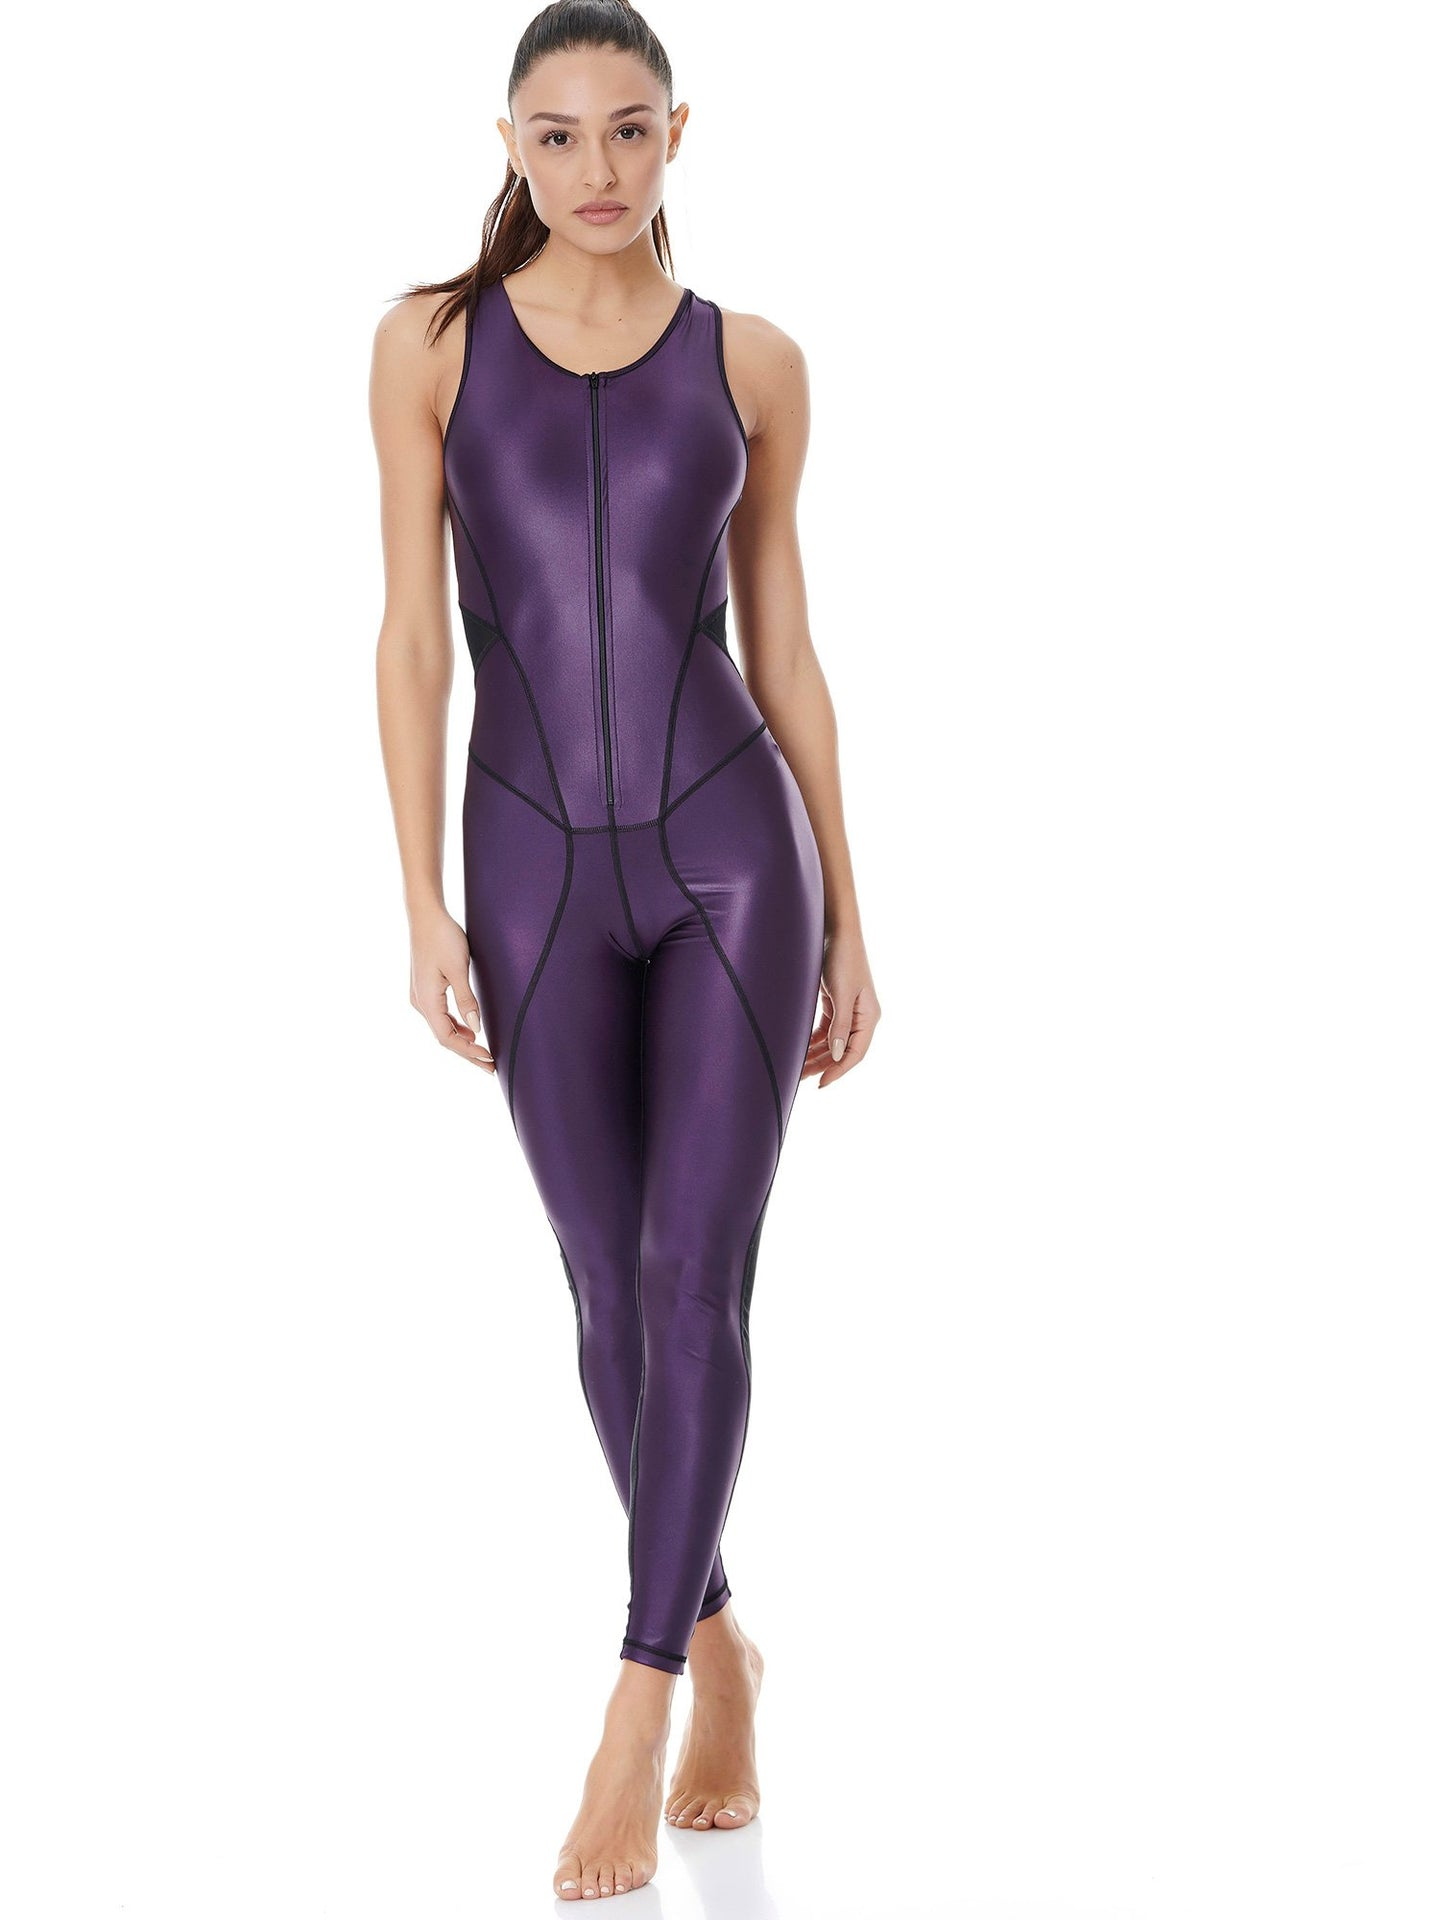 DAZZLE HIGH POWER JUMPSUIT - PURPLE